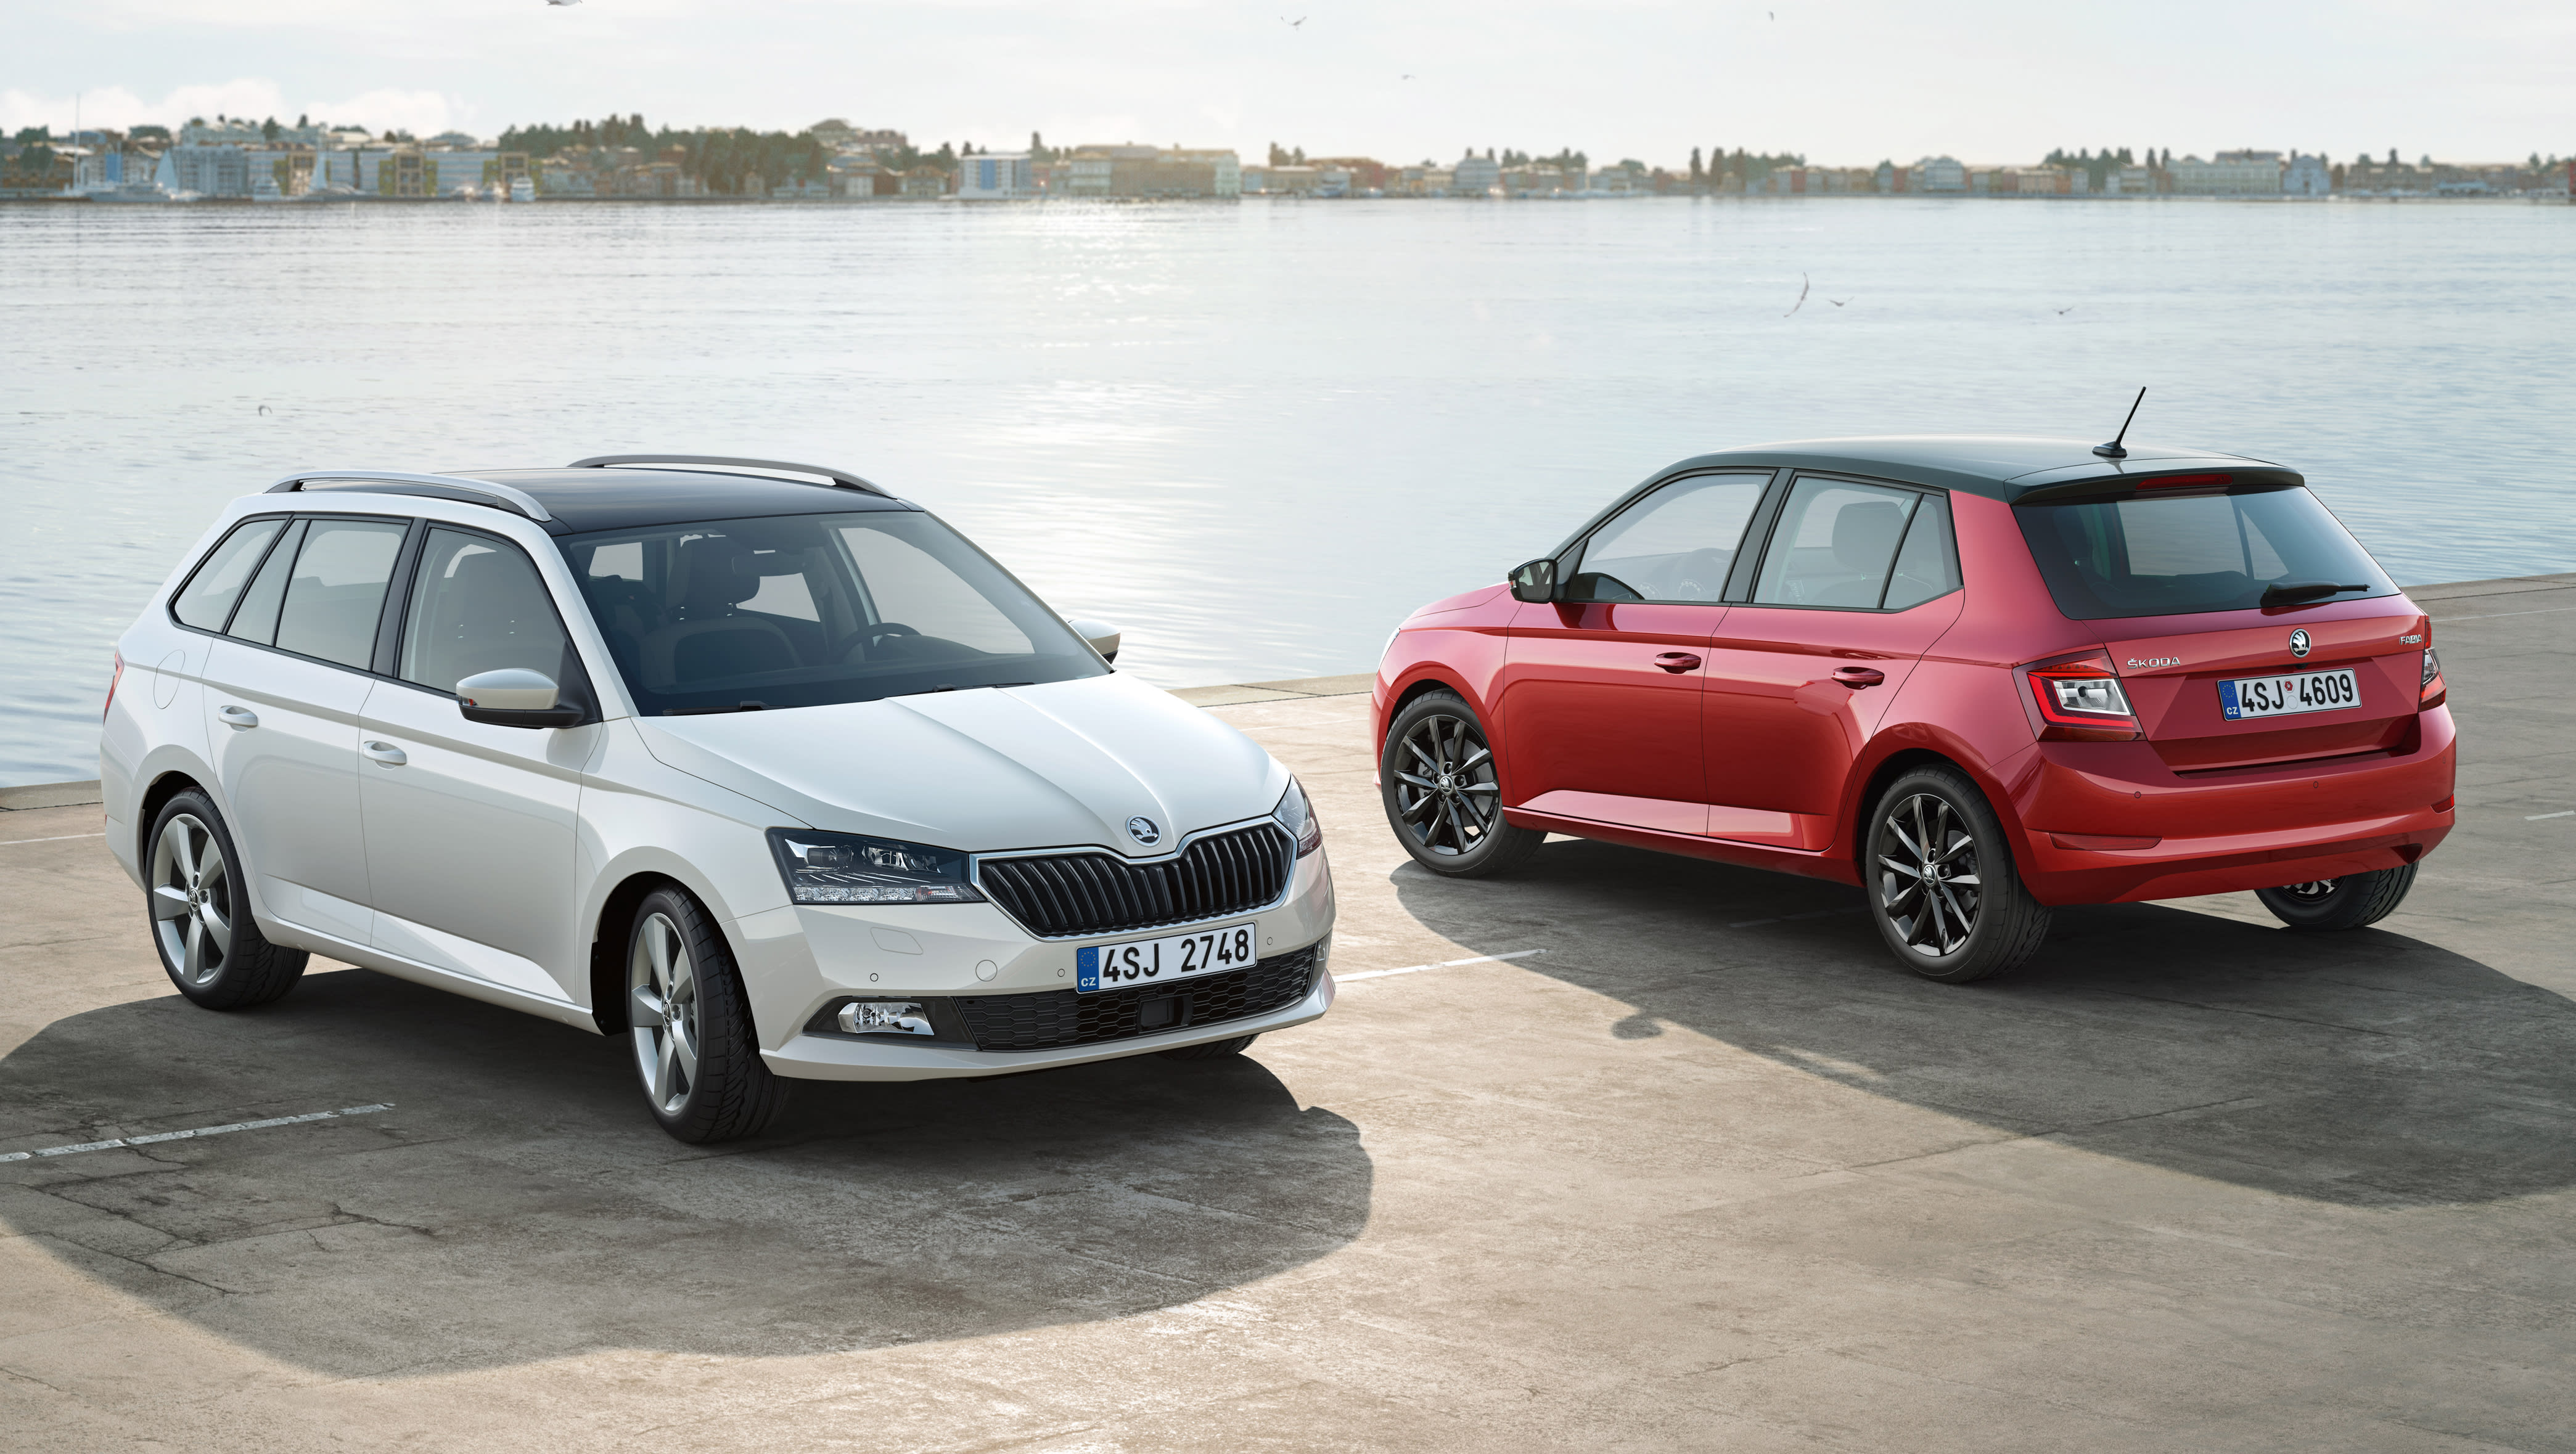 Skoda Fabia 2019 Pricing And Specs Revealed Car News Carsguide